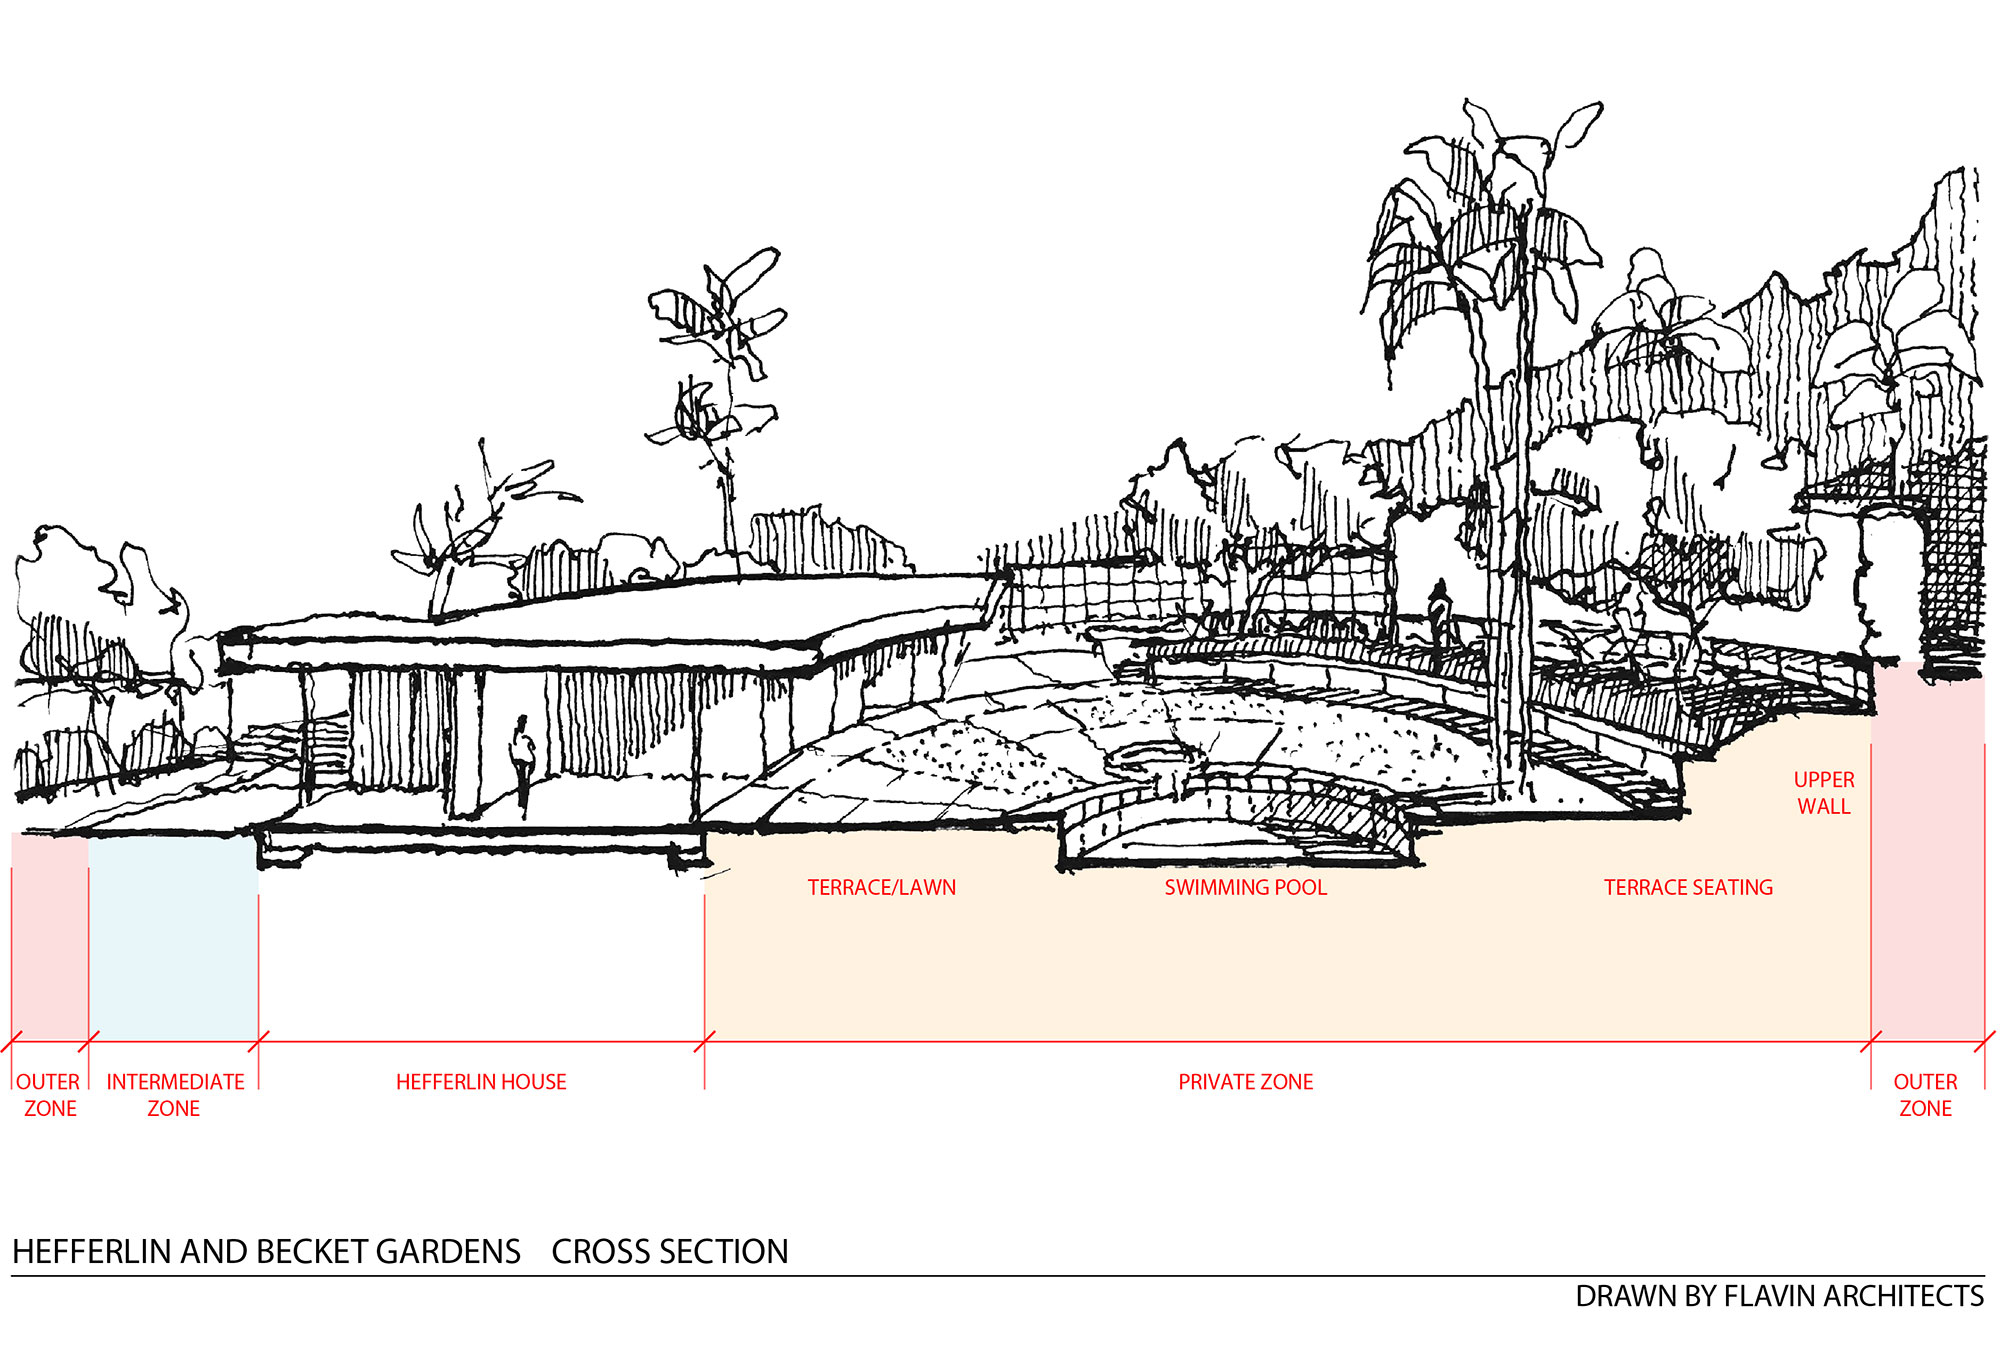 hand drawing sketch of cross section of royston gardens